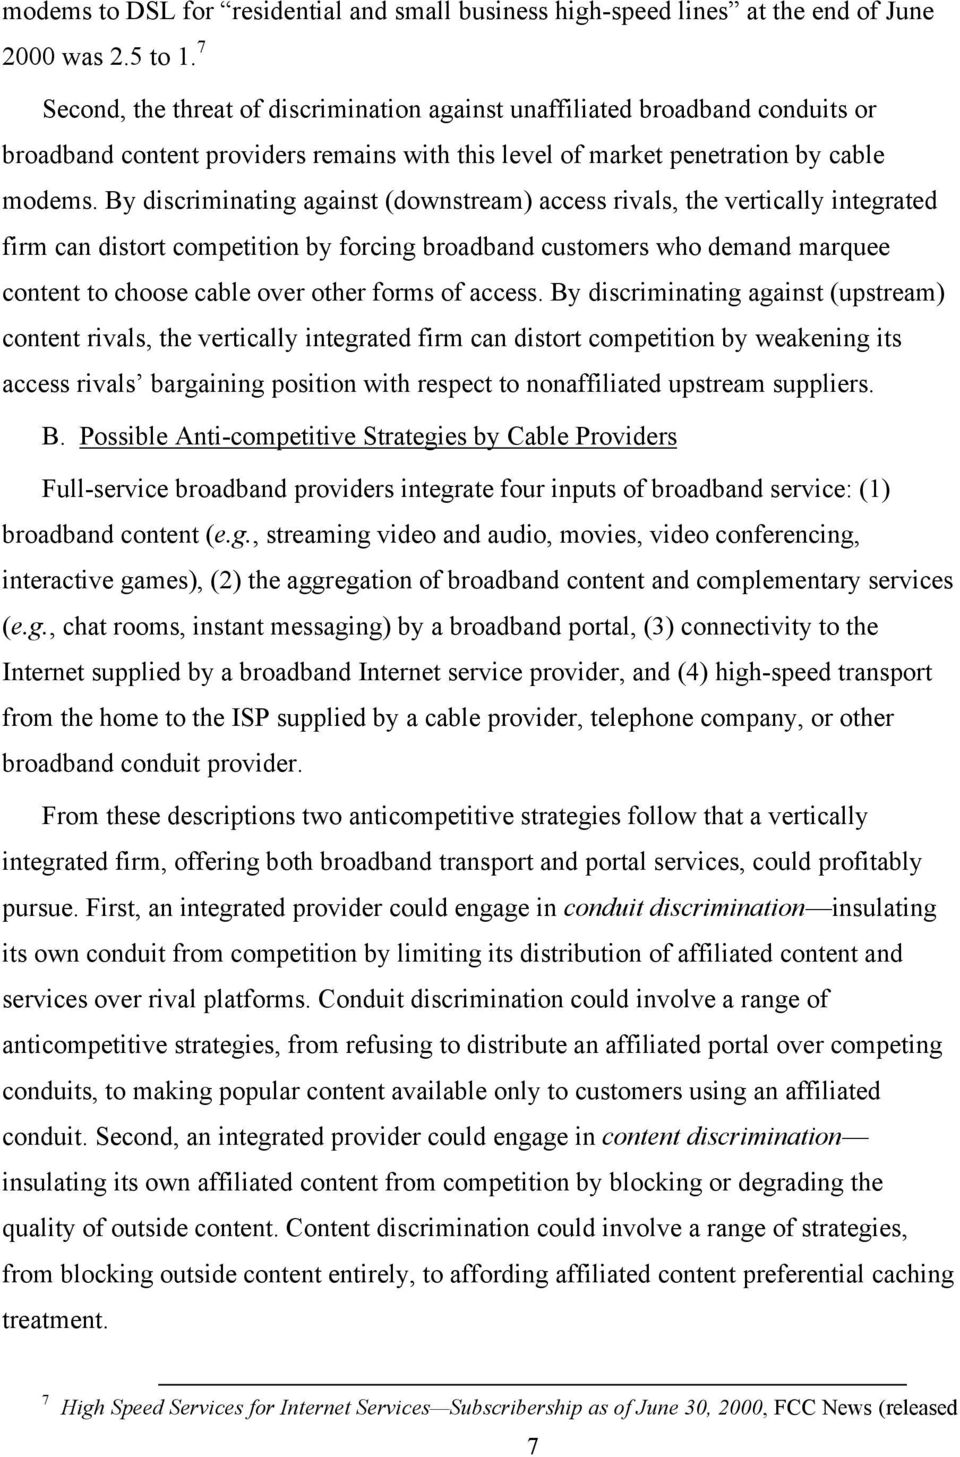 By discriminating against (downstream) access rivals, the vertically integrated firm can distort competition by forcing broadband customers who demand marquee content to choose cable over other forms